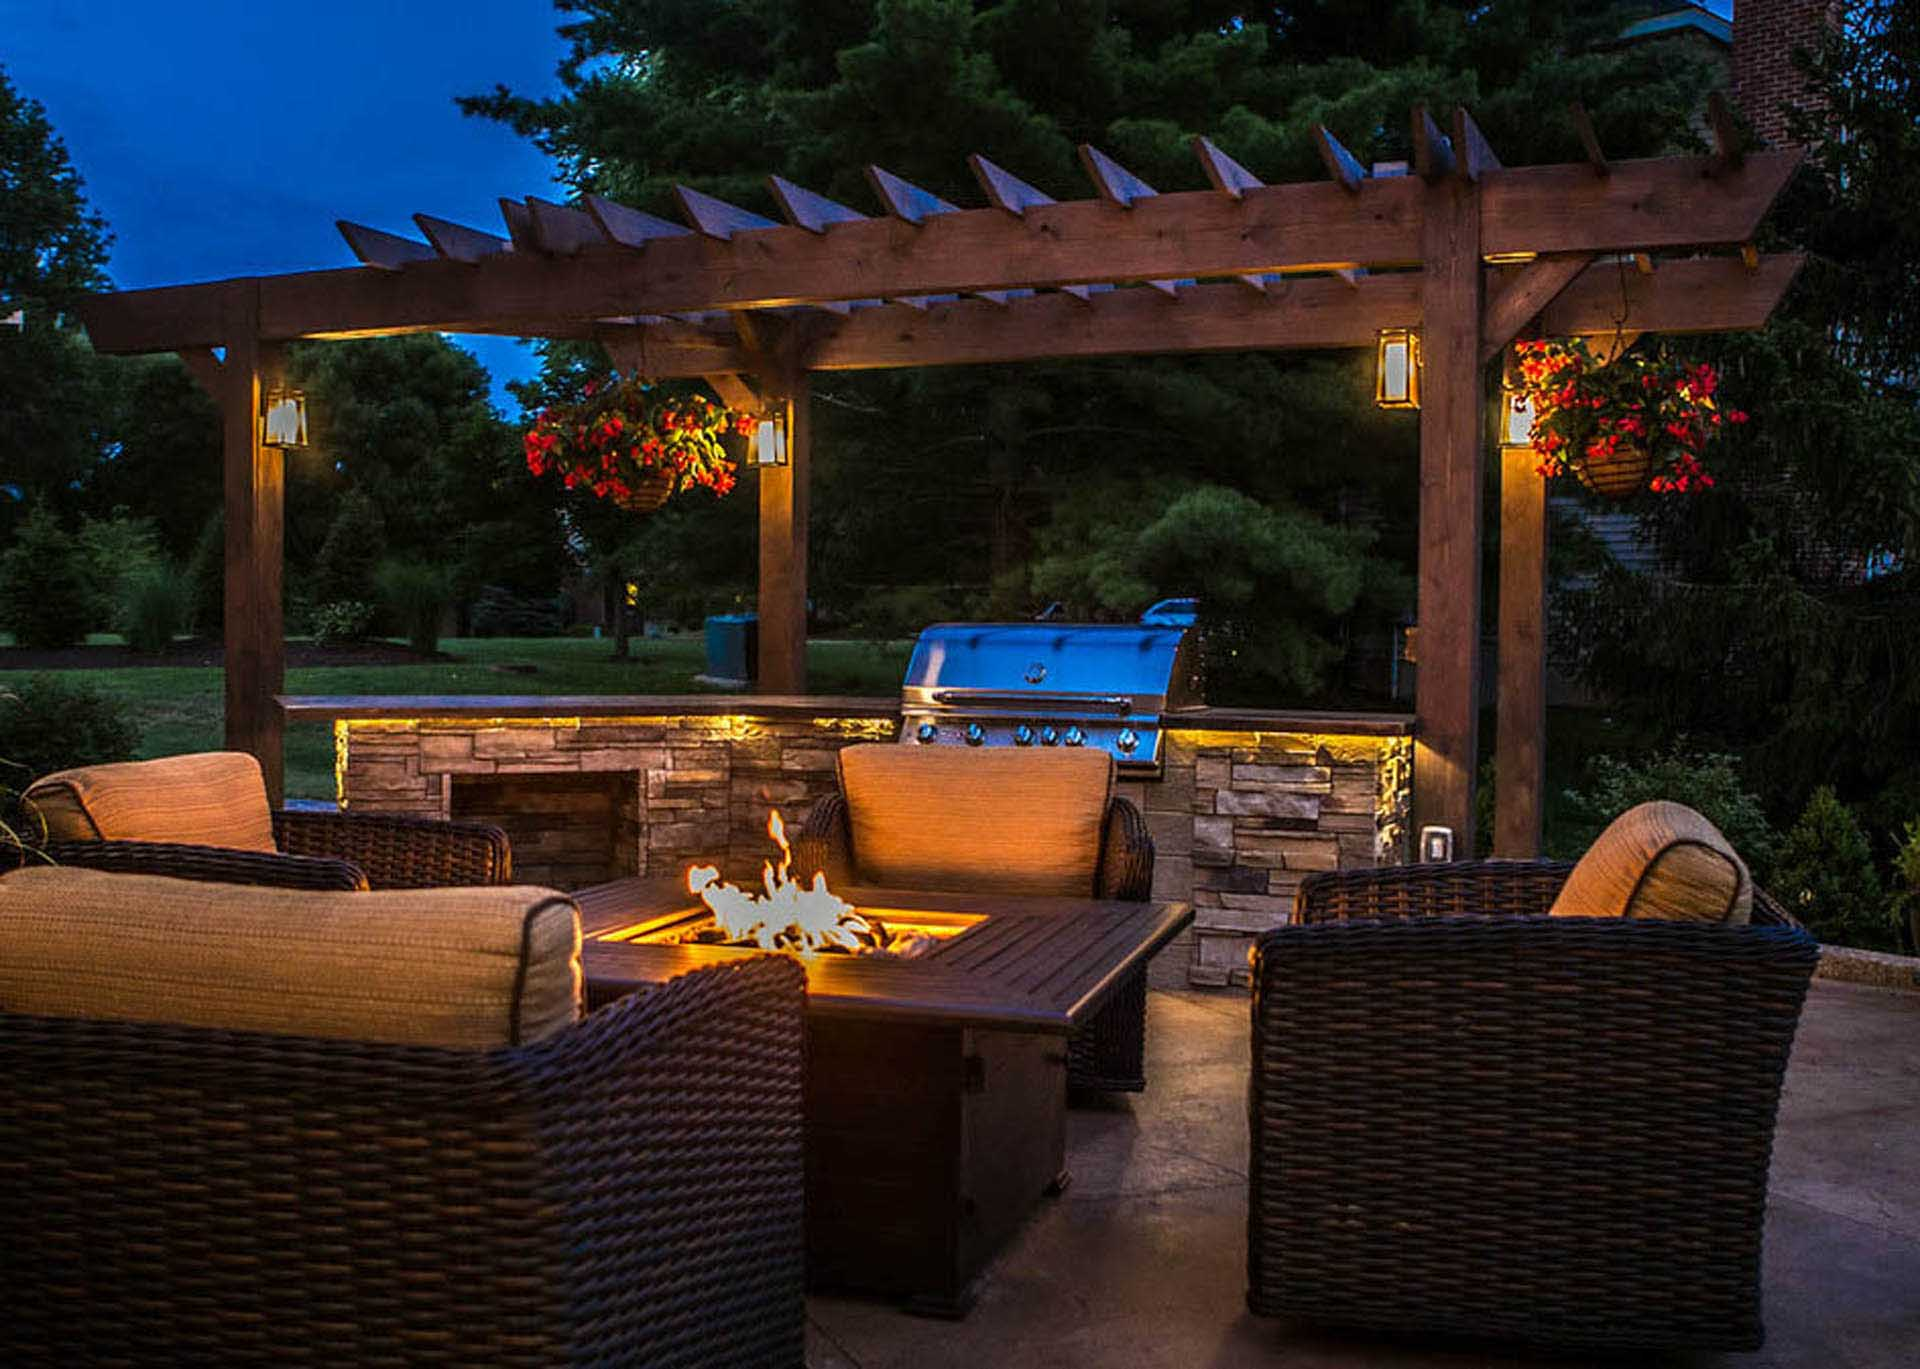 Outdoor Living Remodeling Company   Outdoor Living Design ... on Outdoor Living Company id=59992